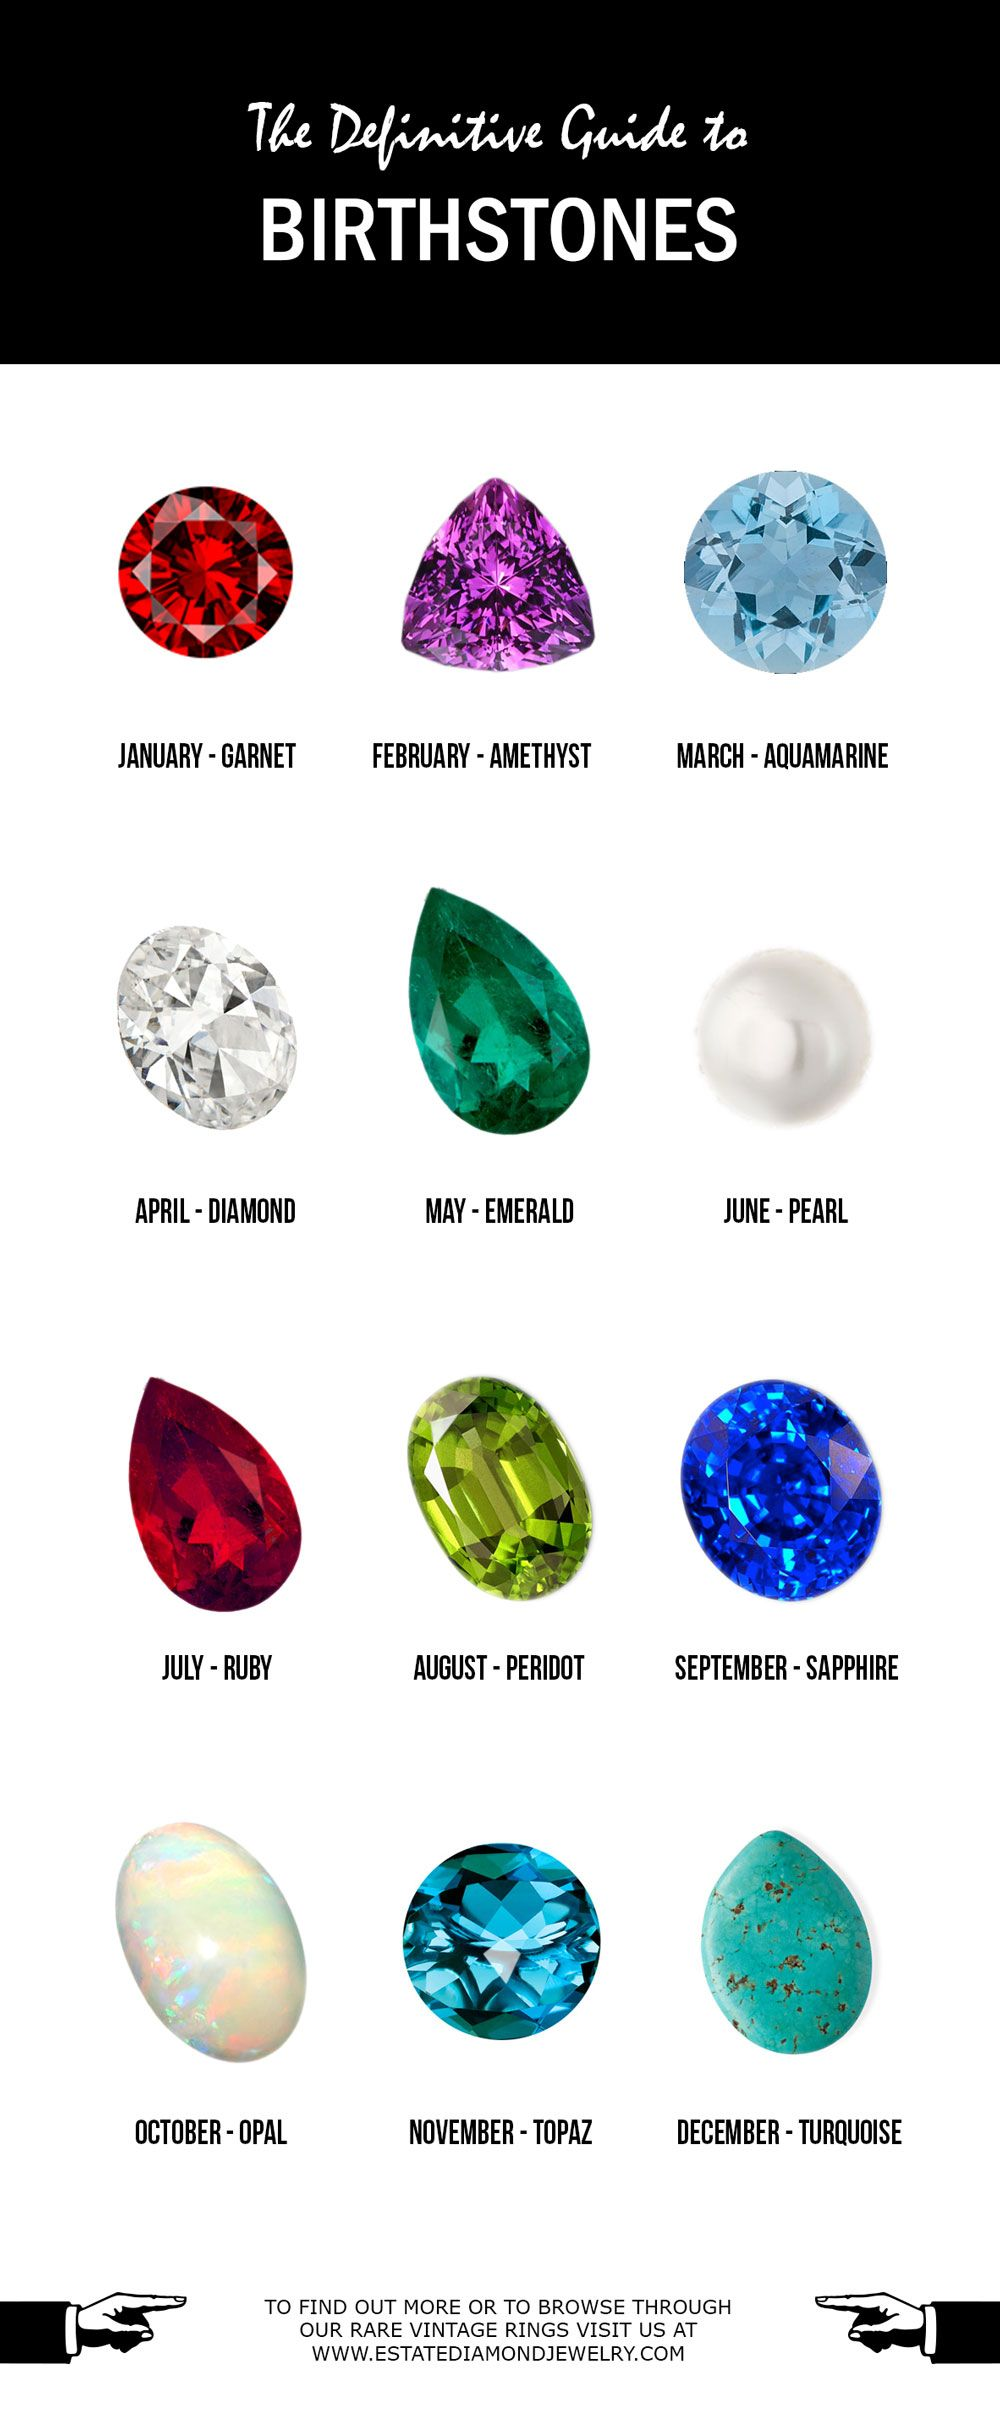 a20c3fd58 Your birthstone may say a lot about who you are! Find out which stone  represents your month.